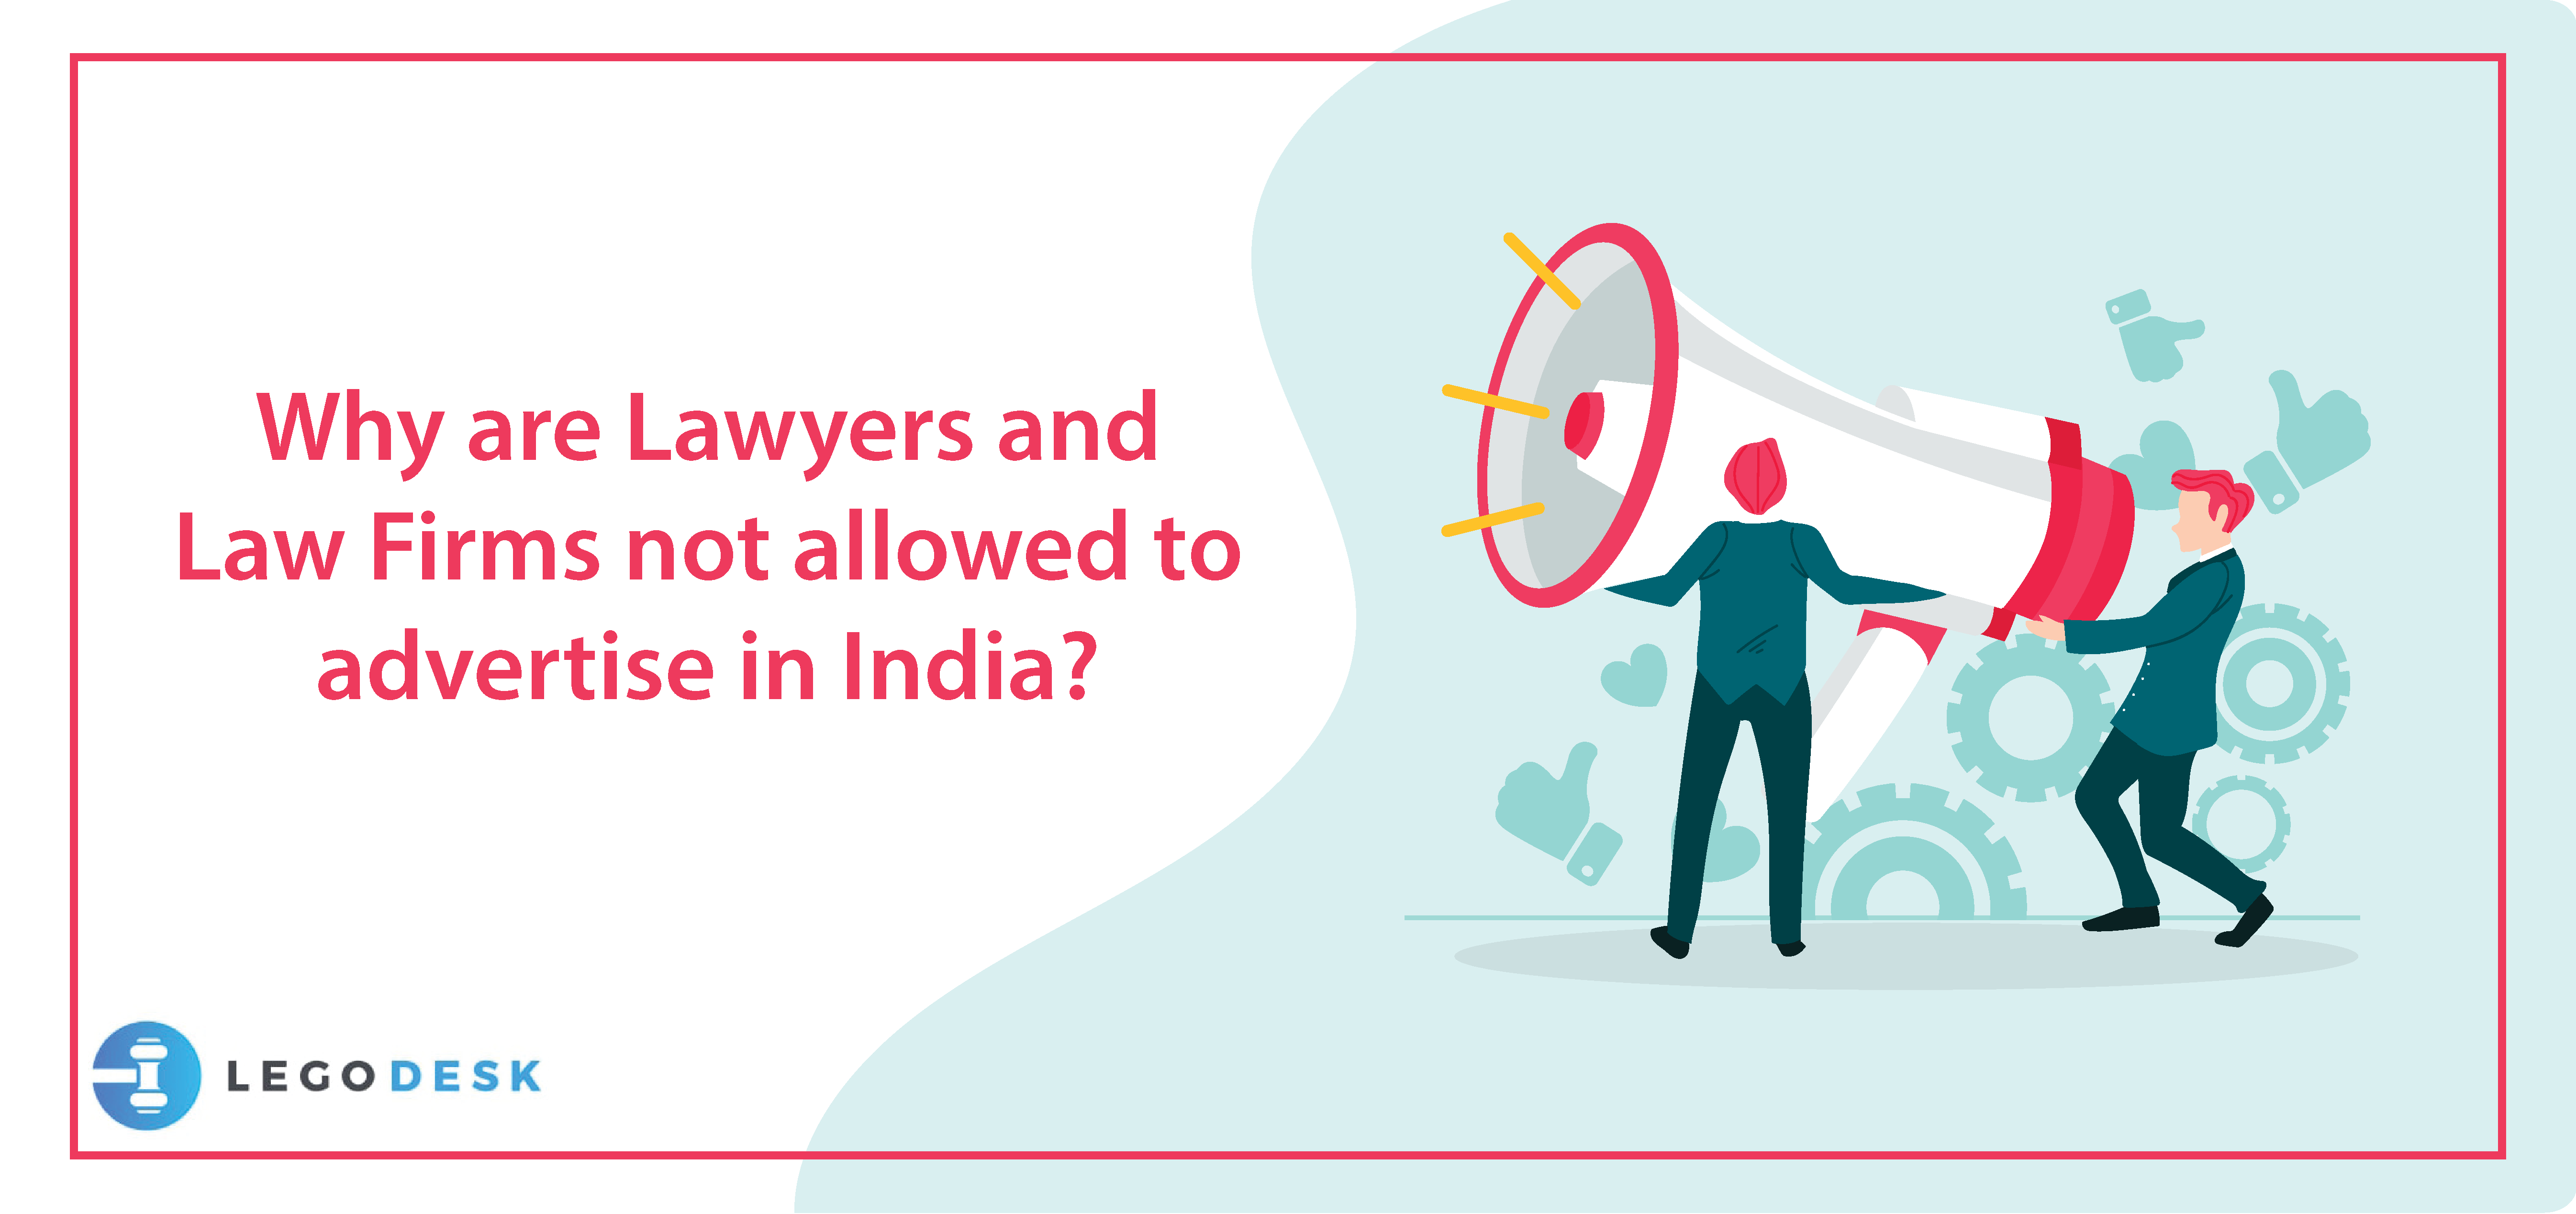 Why are Lawyers and Law Firms not allowed to advertise in India?